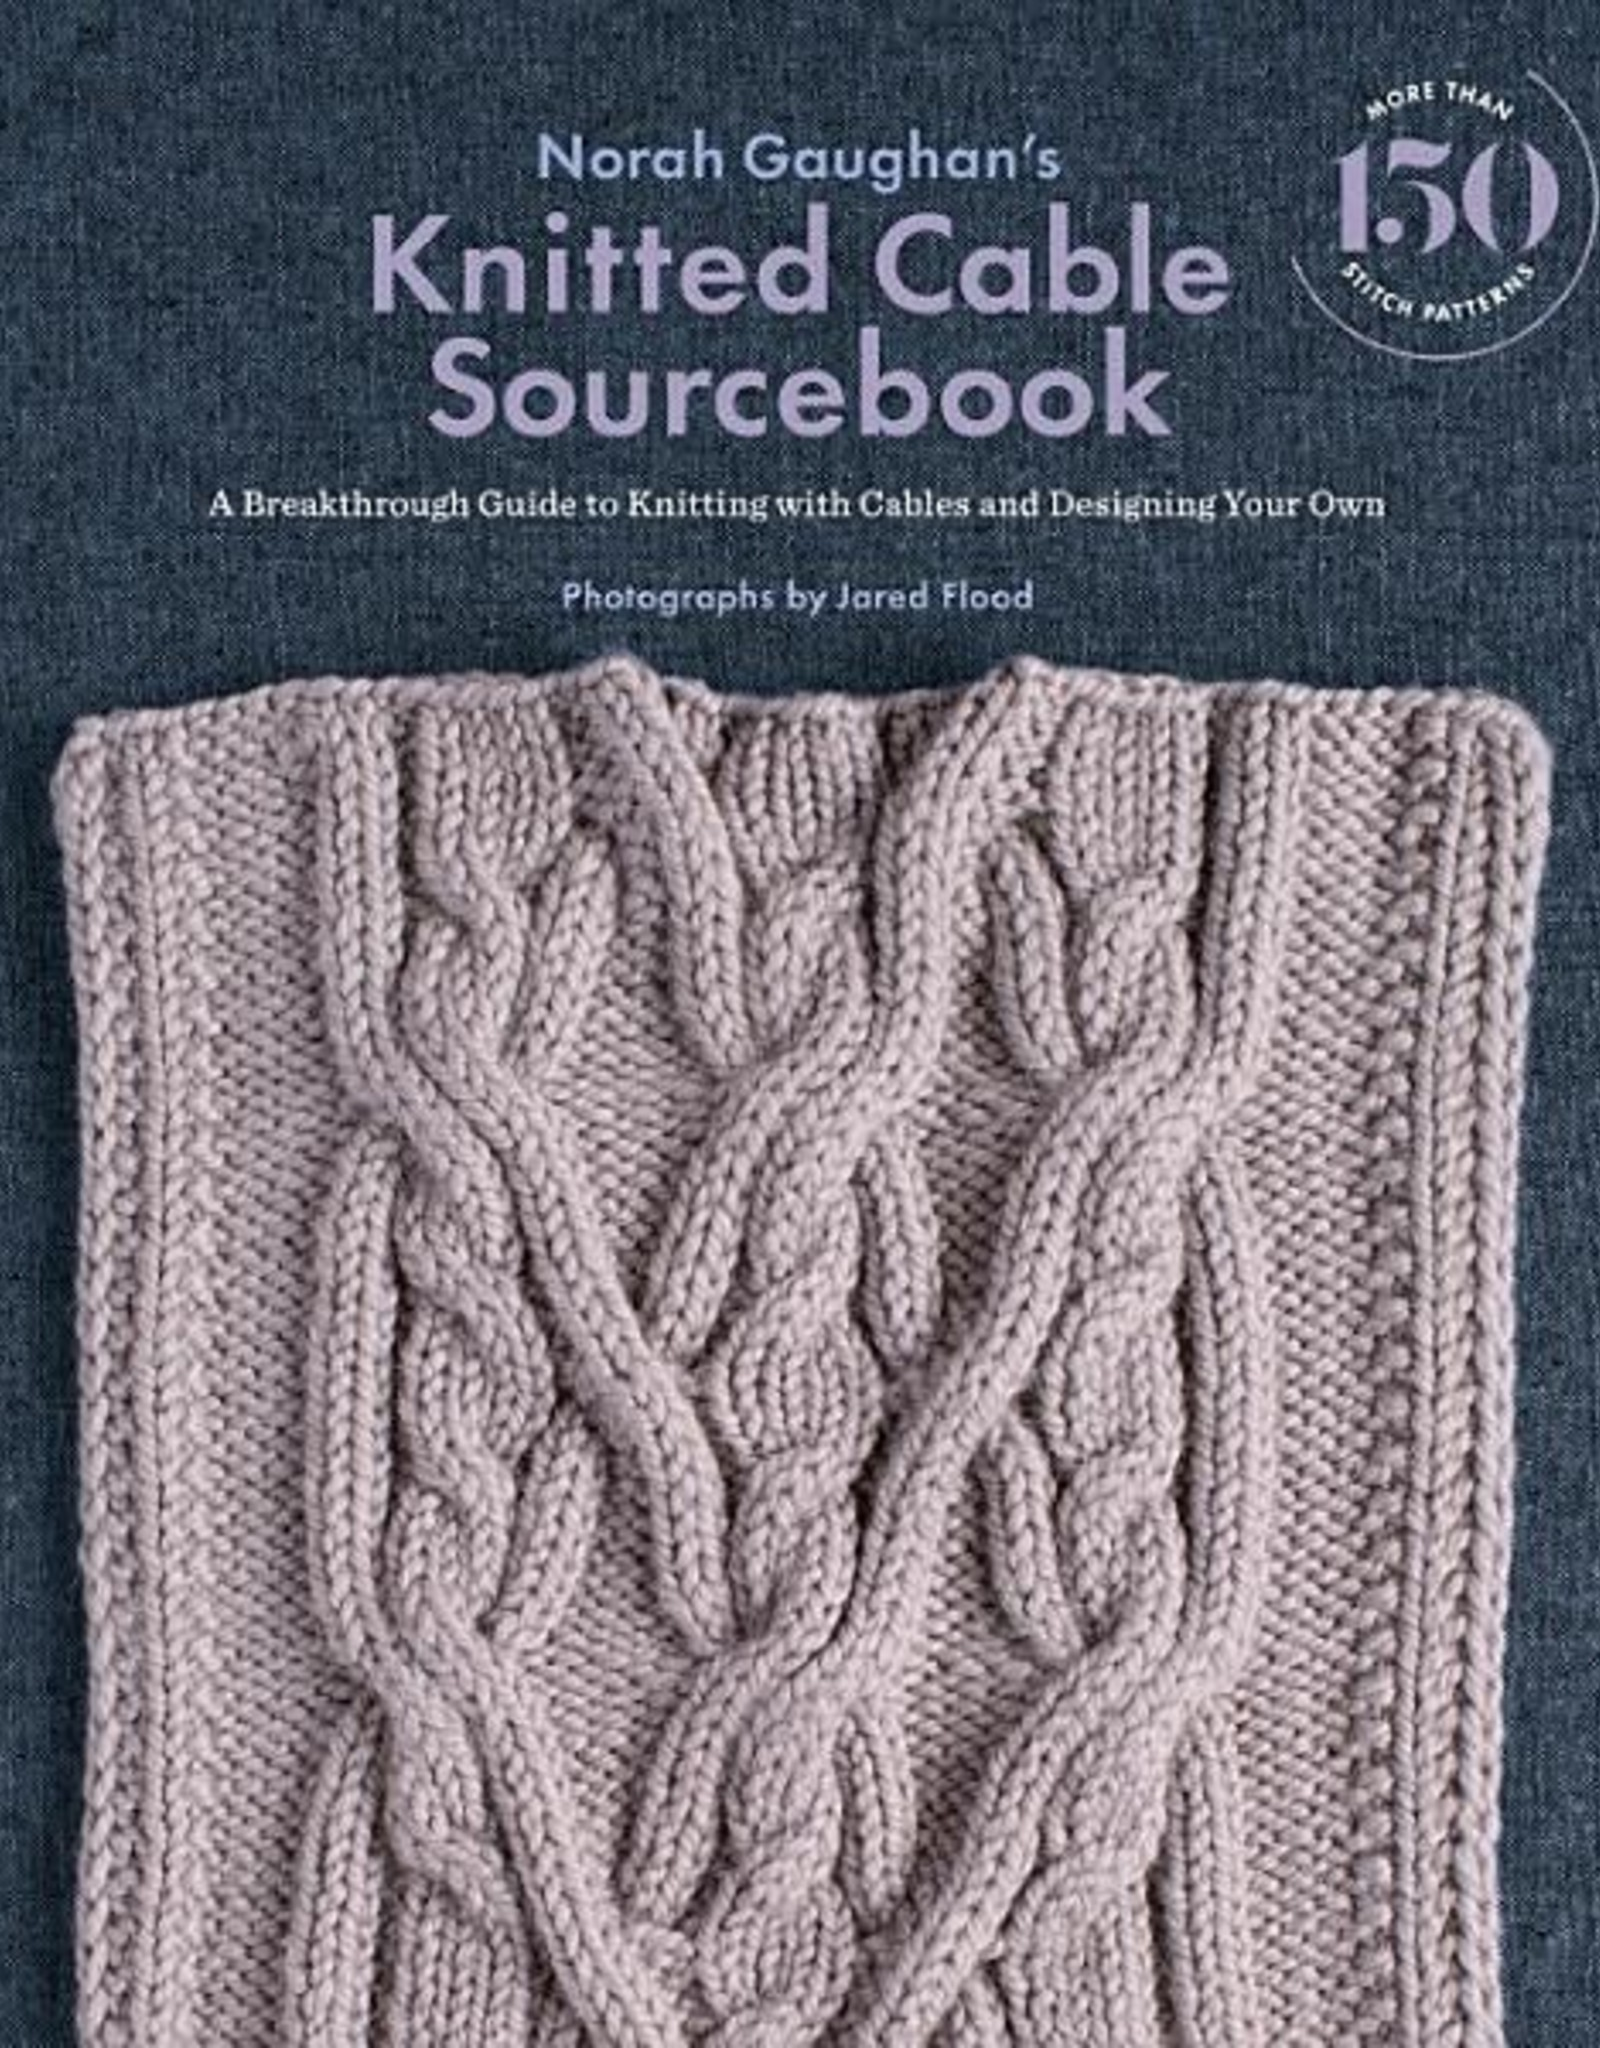 Book - Knitted Cable Source Book - Norah Gaughan